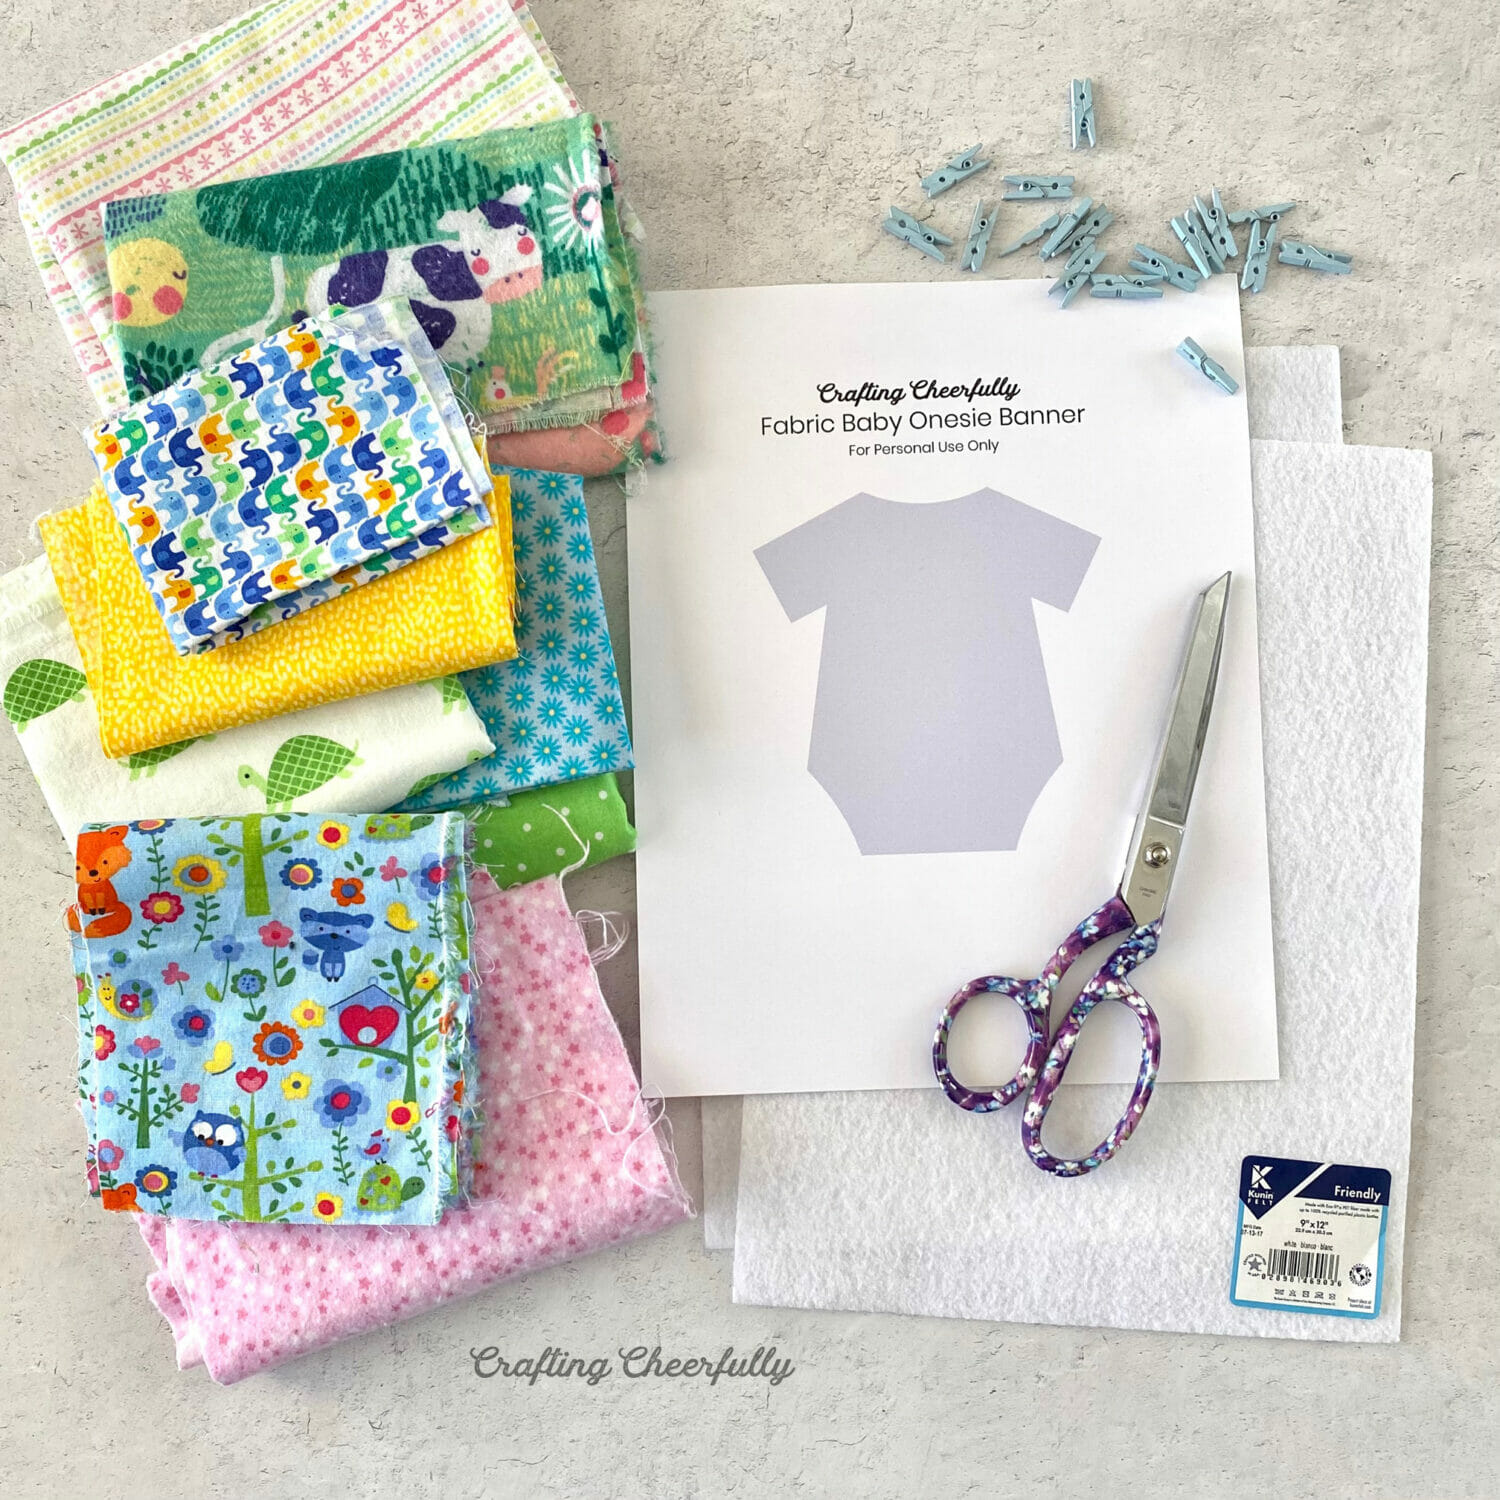 Supplies gathered together for making banner including fabric, scissors, felt, template and clothespins.